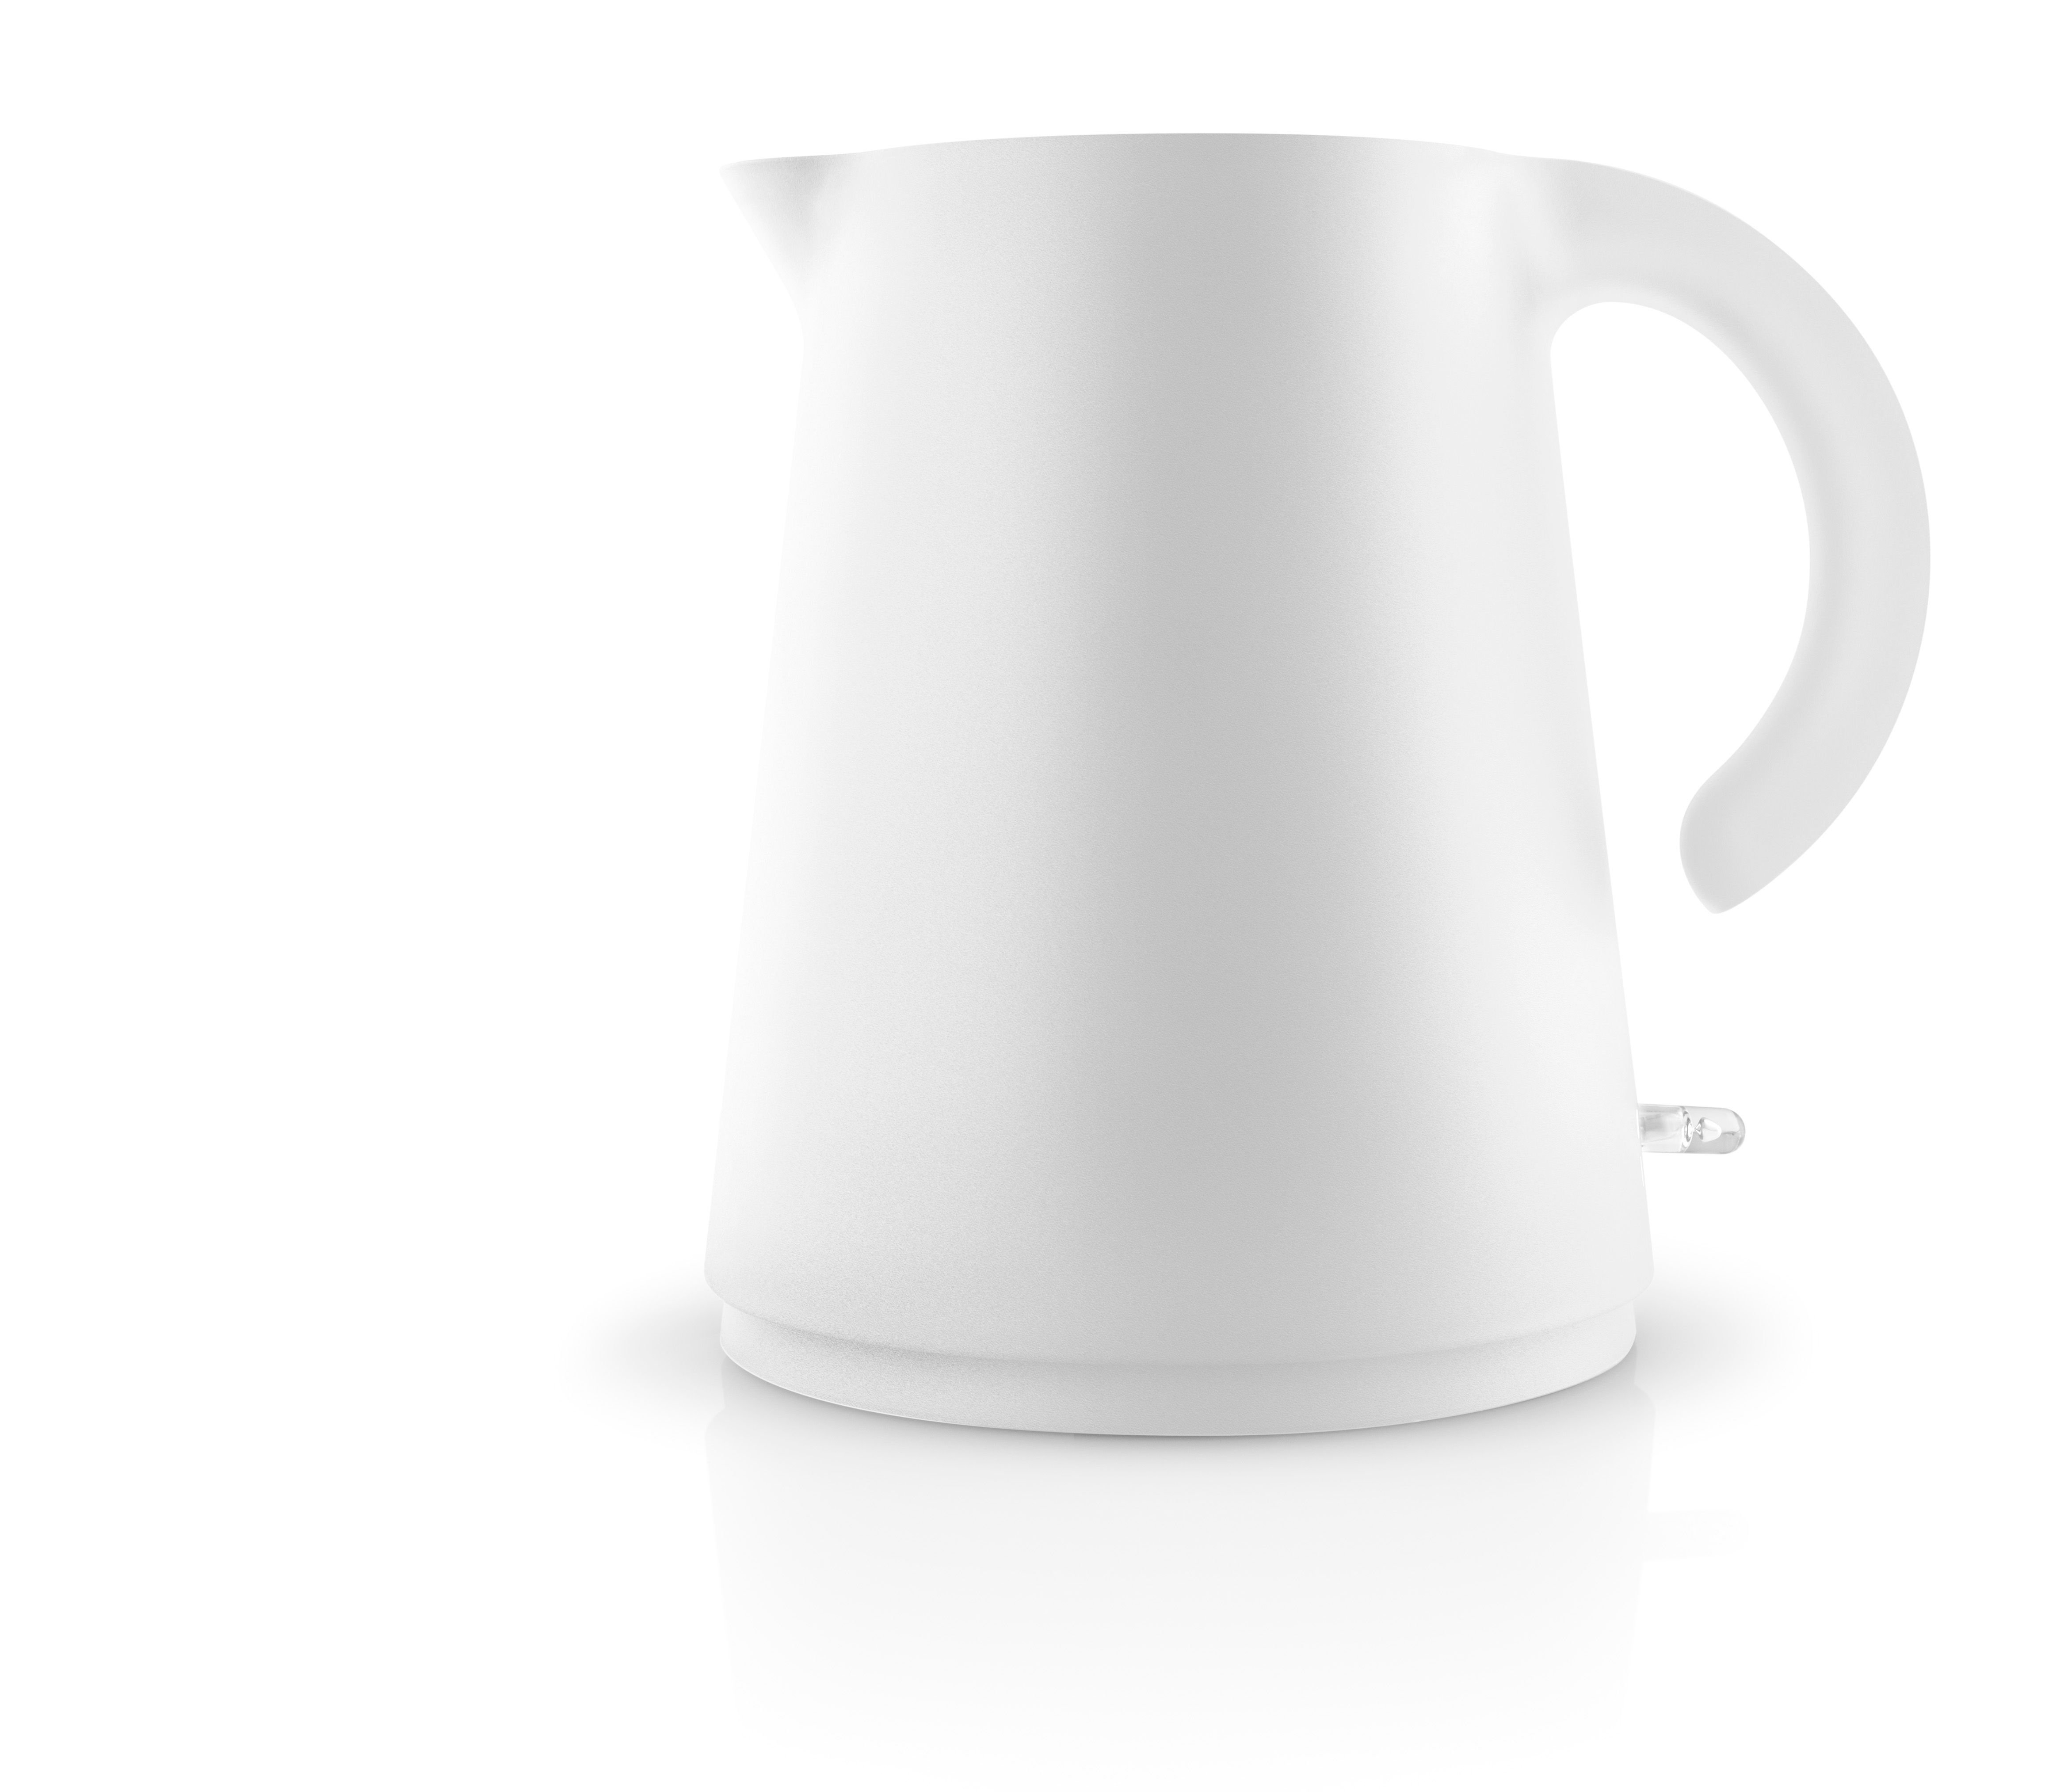 Eva Solo - Rise Electric Kettle 1,2 L - White (502731)